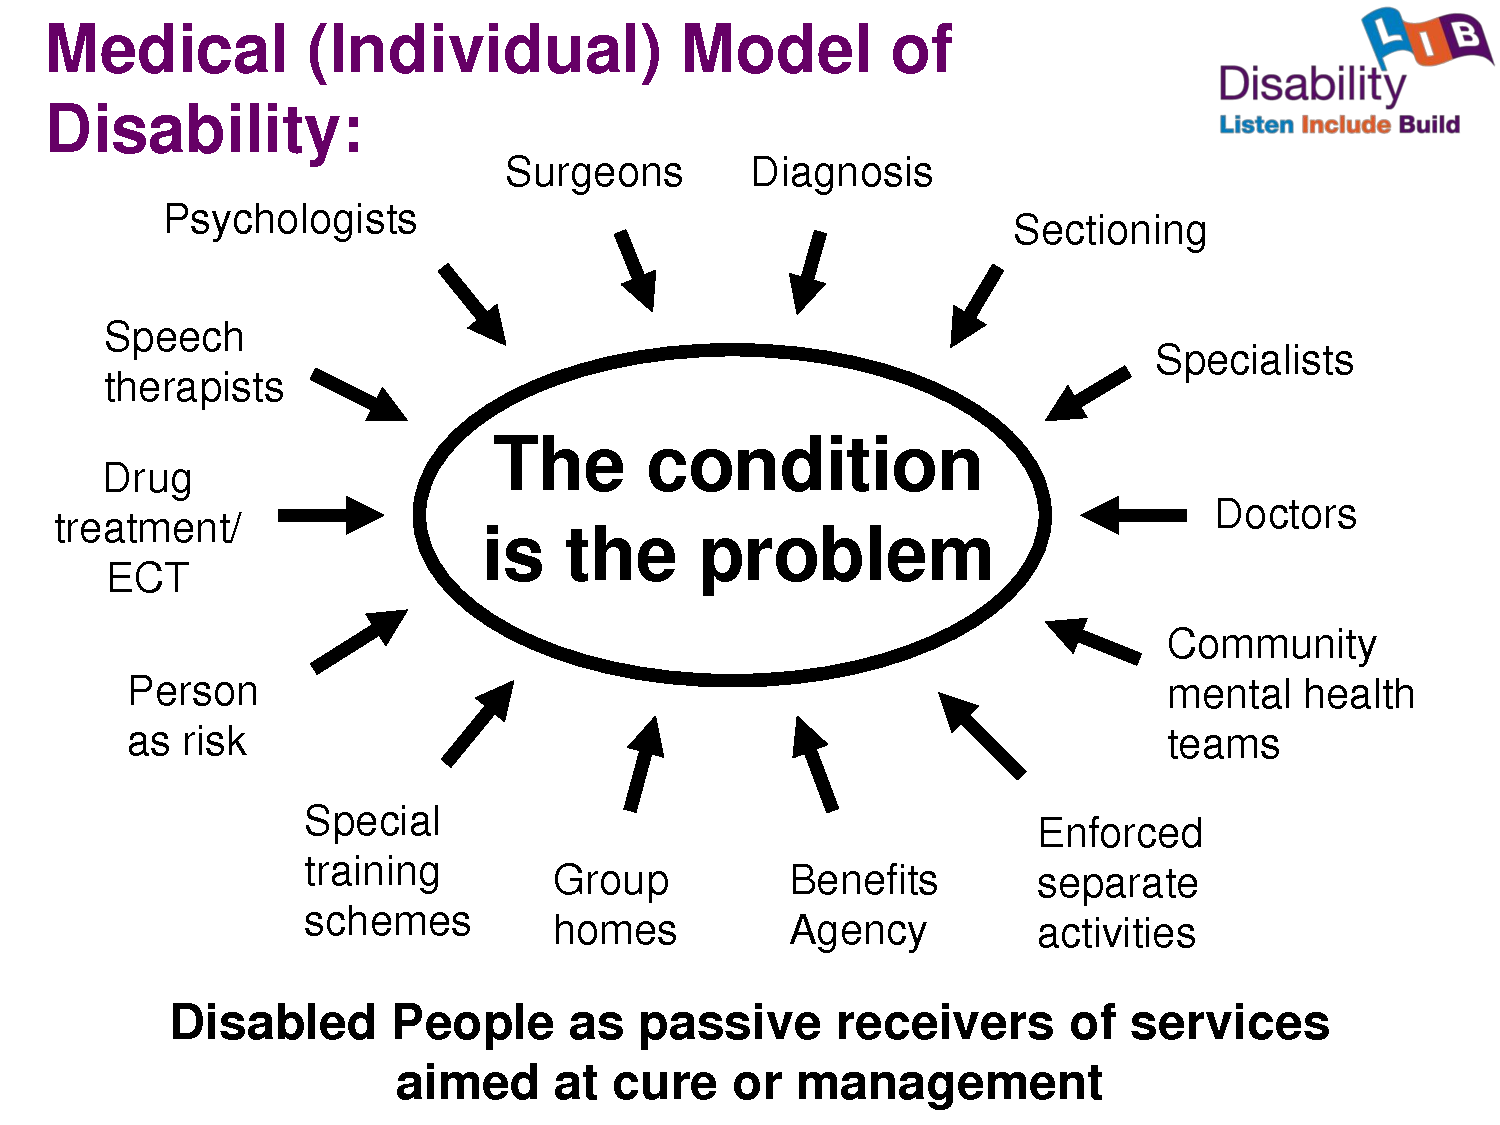 social and medical disability models Well, there are two ways to look at a disability: the medical model and the social model both are equally valid, but have different uses after i describe the two models, i would like to apply them to the disability i'm most familiar with, autism.